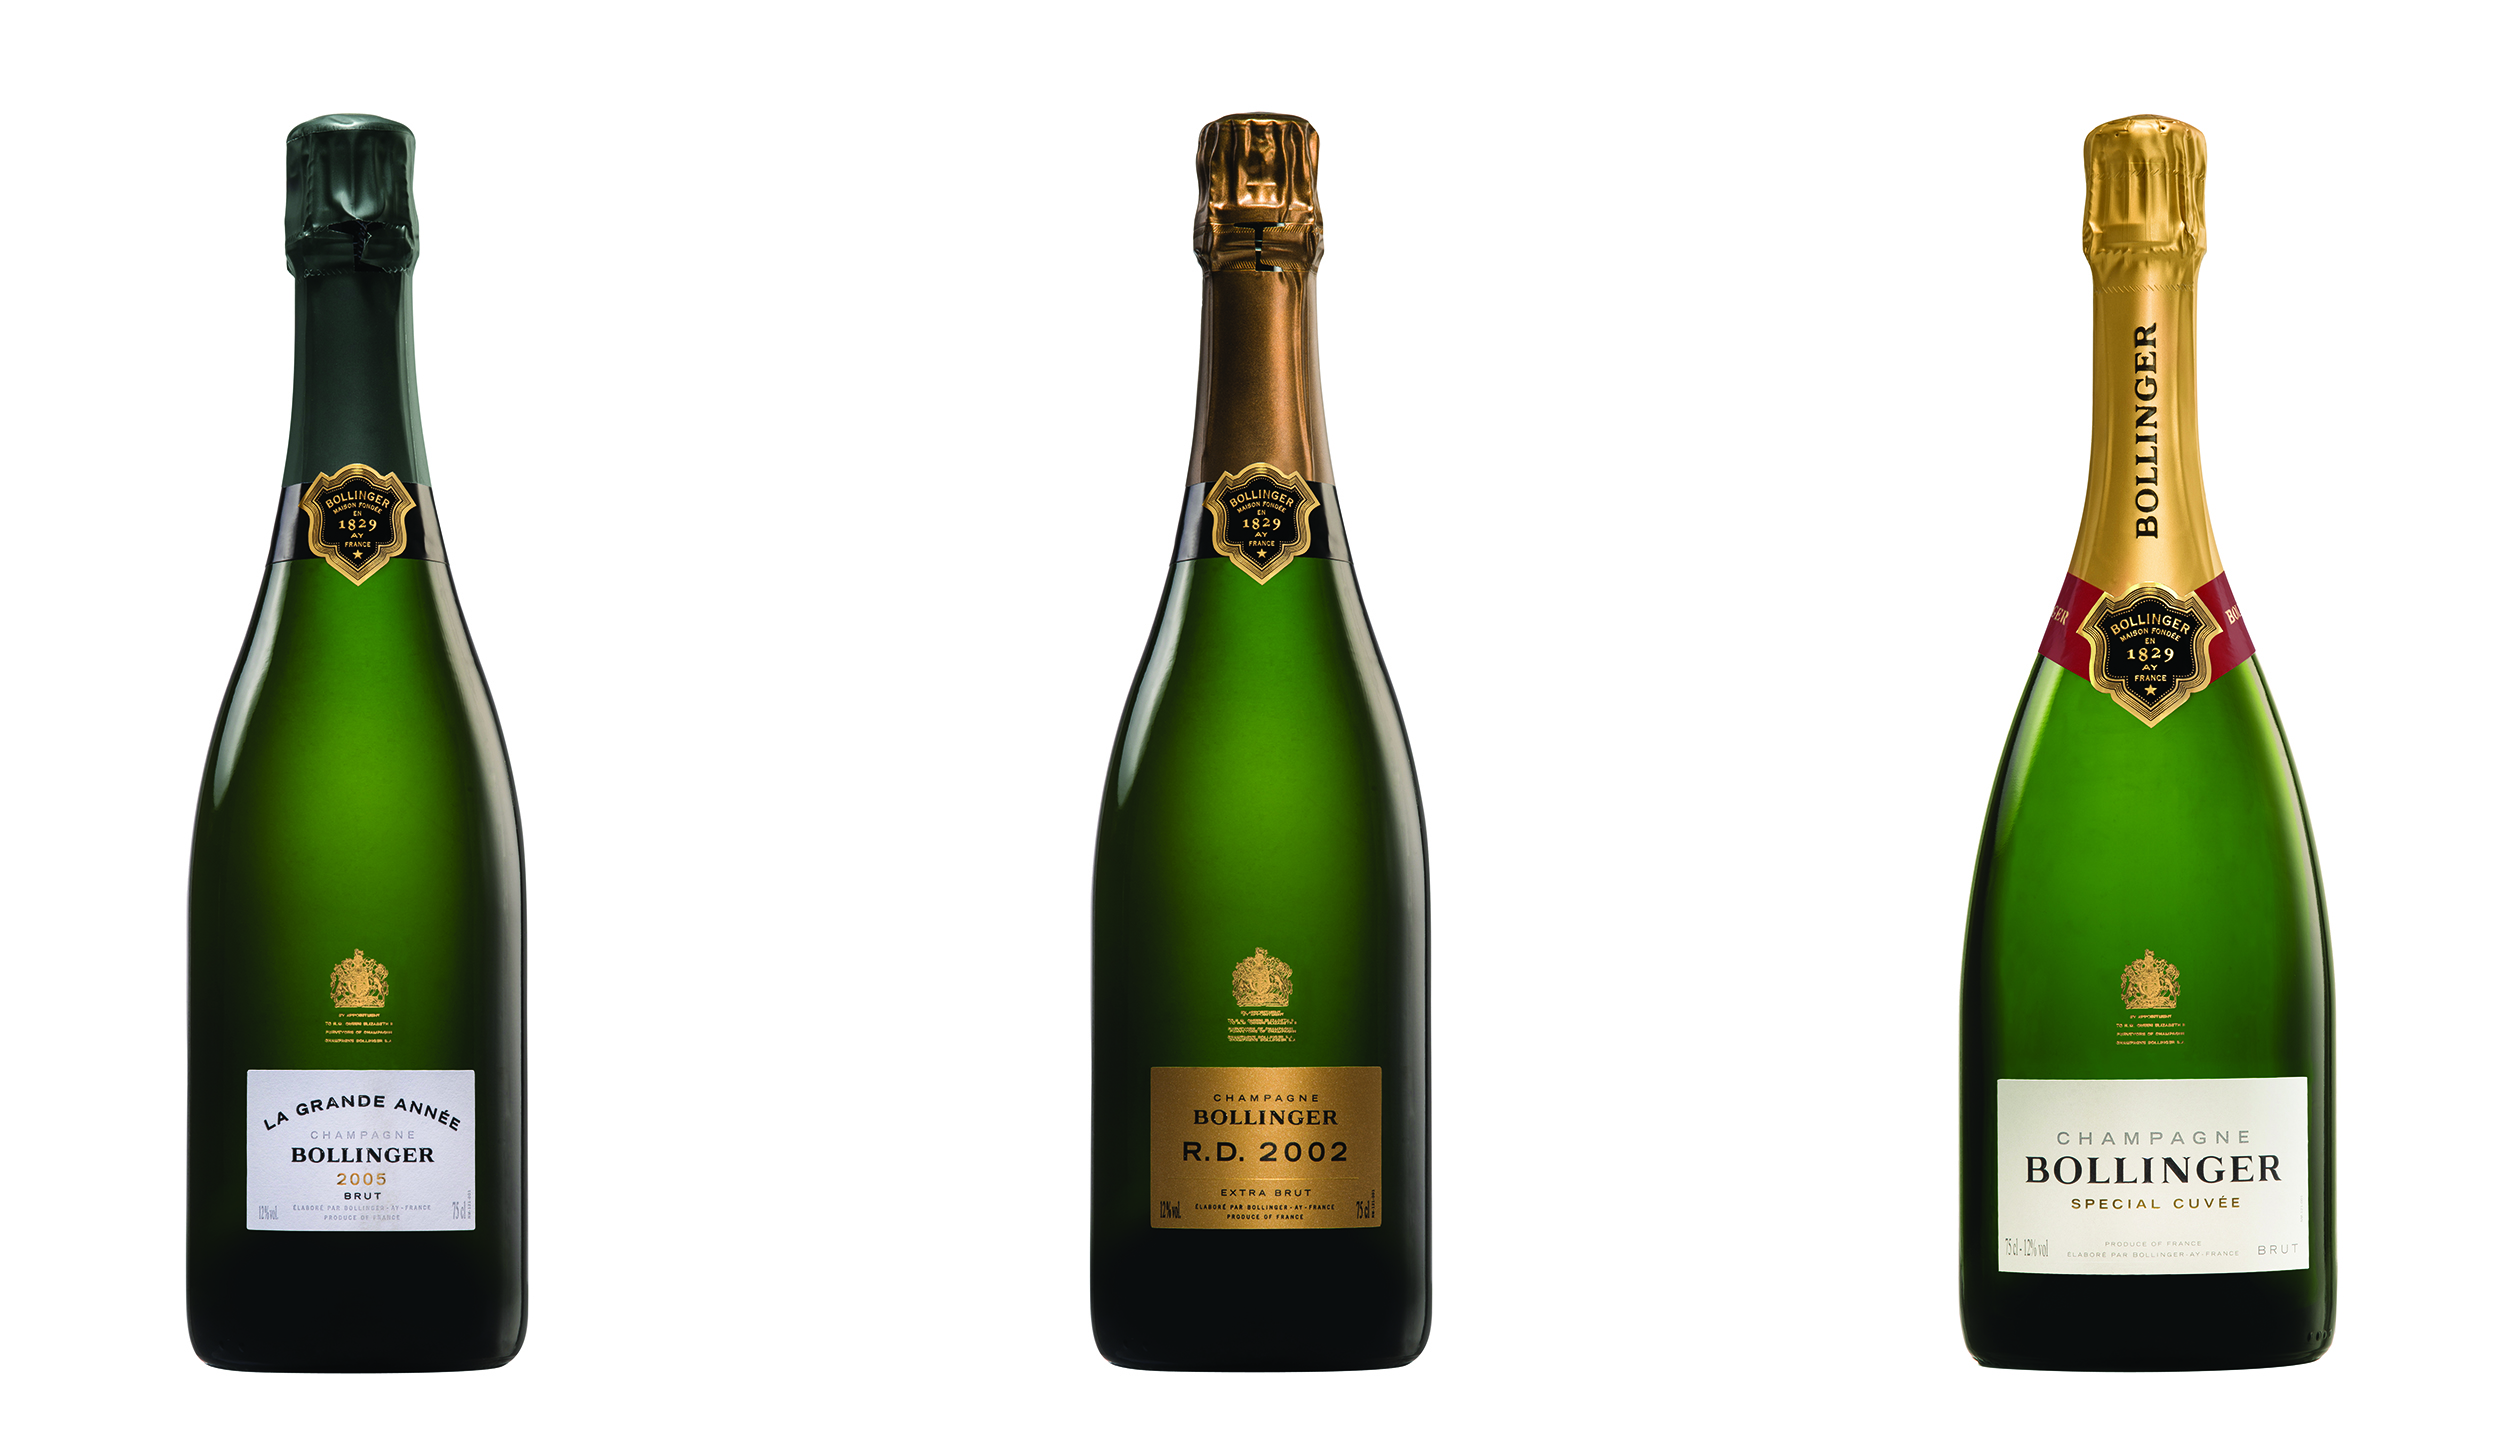 Bollinger bottles that will be auctioned by Sotheby's on Saturday.